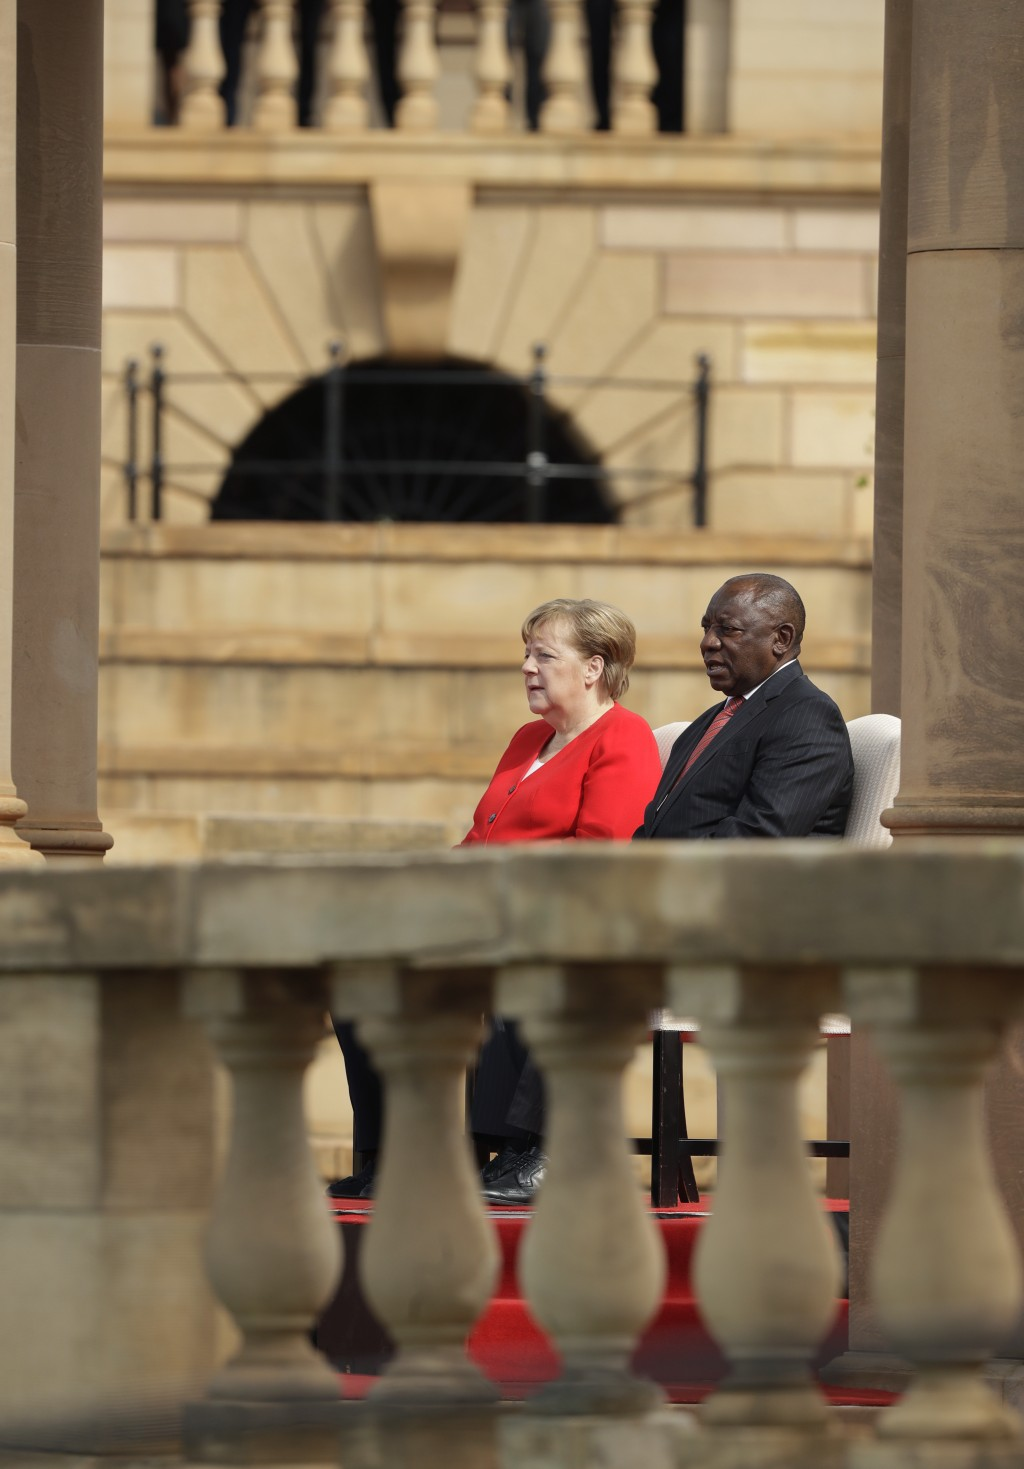 German Chancellor Angela Merkel, left, sits with South African President Cyril Ramaphosa, during a welcoming ceremony at the government's Union Buildi...